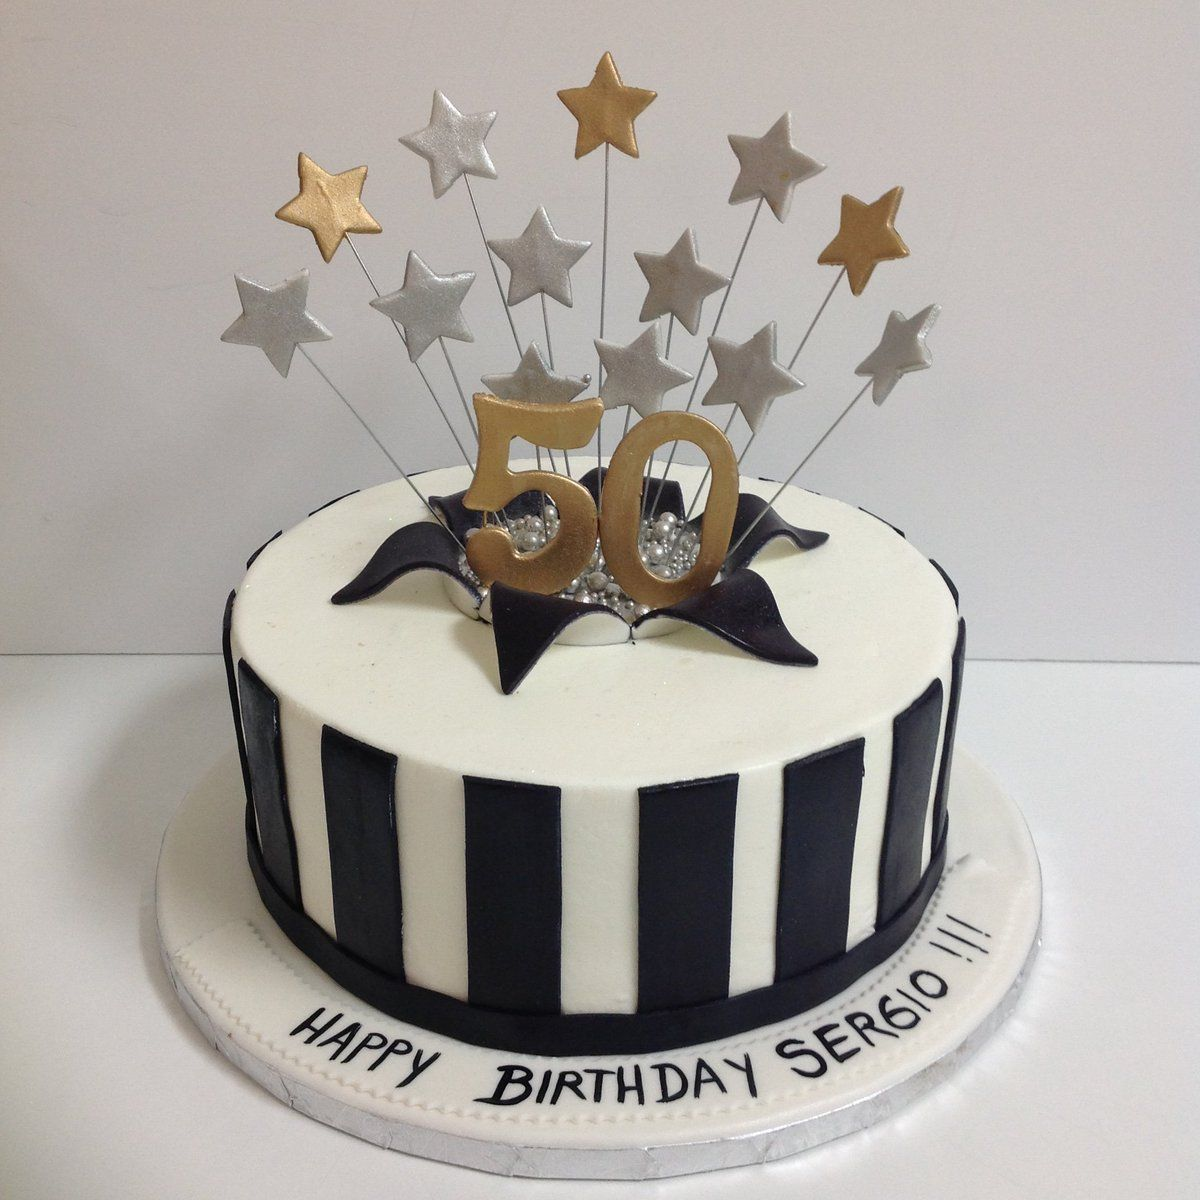 Imagen Relacionada Birthday Cakes For Men Elegant Birthday